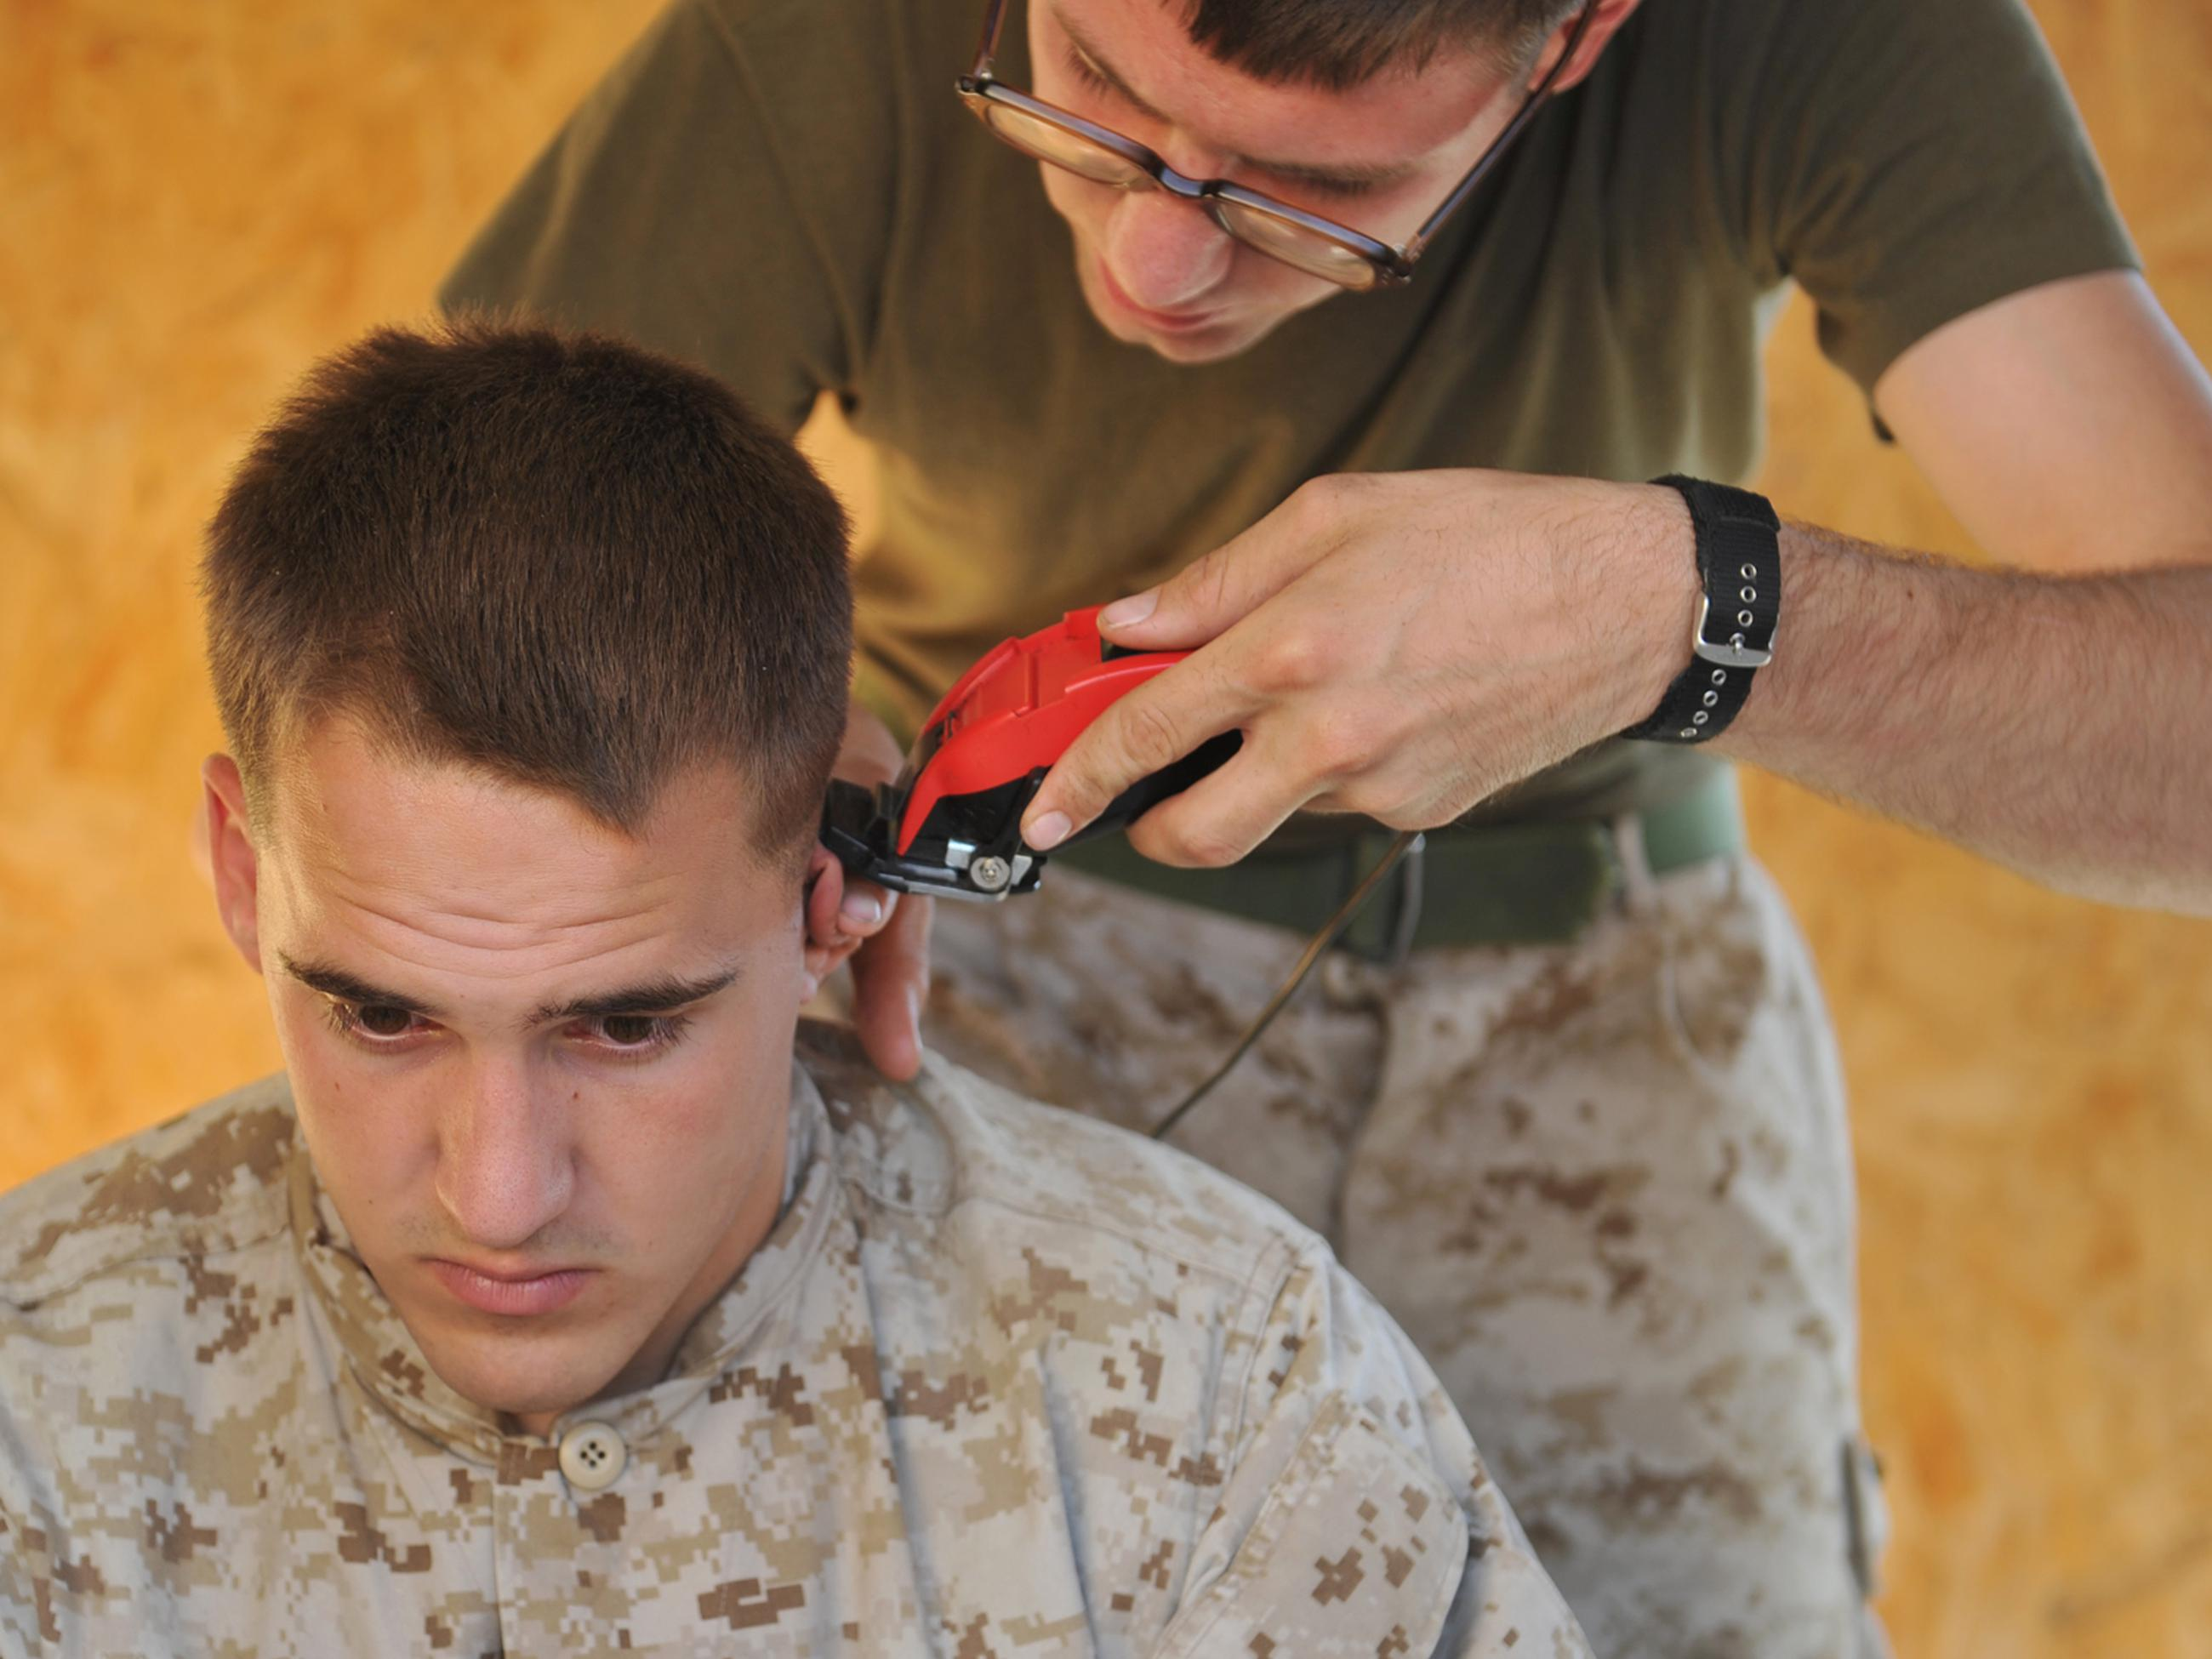 marine corps haircut regulations marines on fashionable hairstyles 3046 | 145647559.jpg.optimized